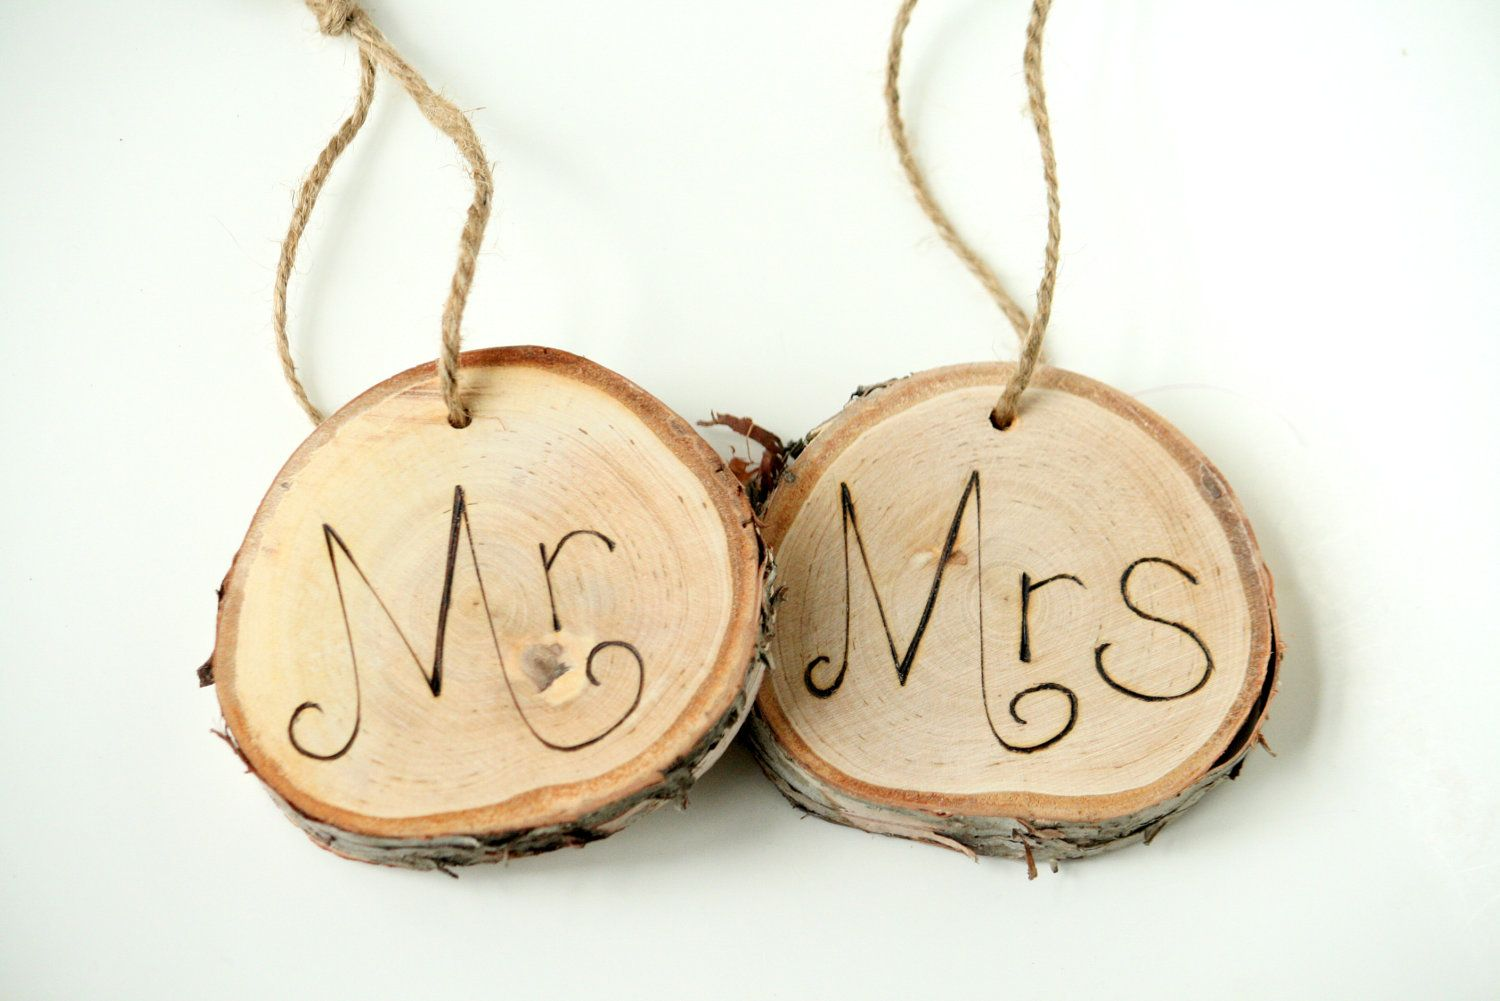 Mr and Mrs Large Birch Tree Ring Reception Signs - Birch Wood Perfect for Beach Garden Rustic Wedding. $28.00, via Etsy.